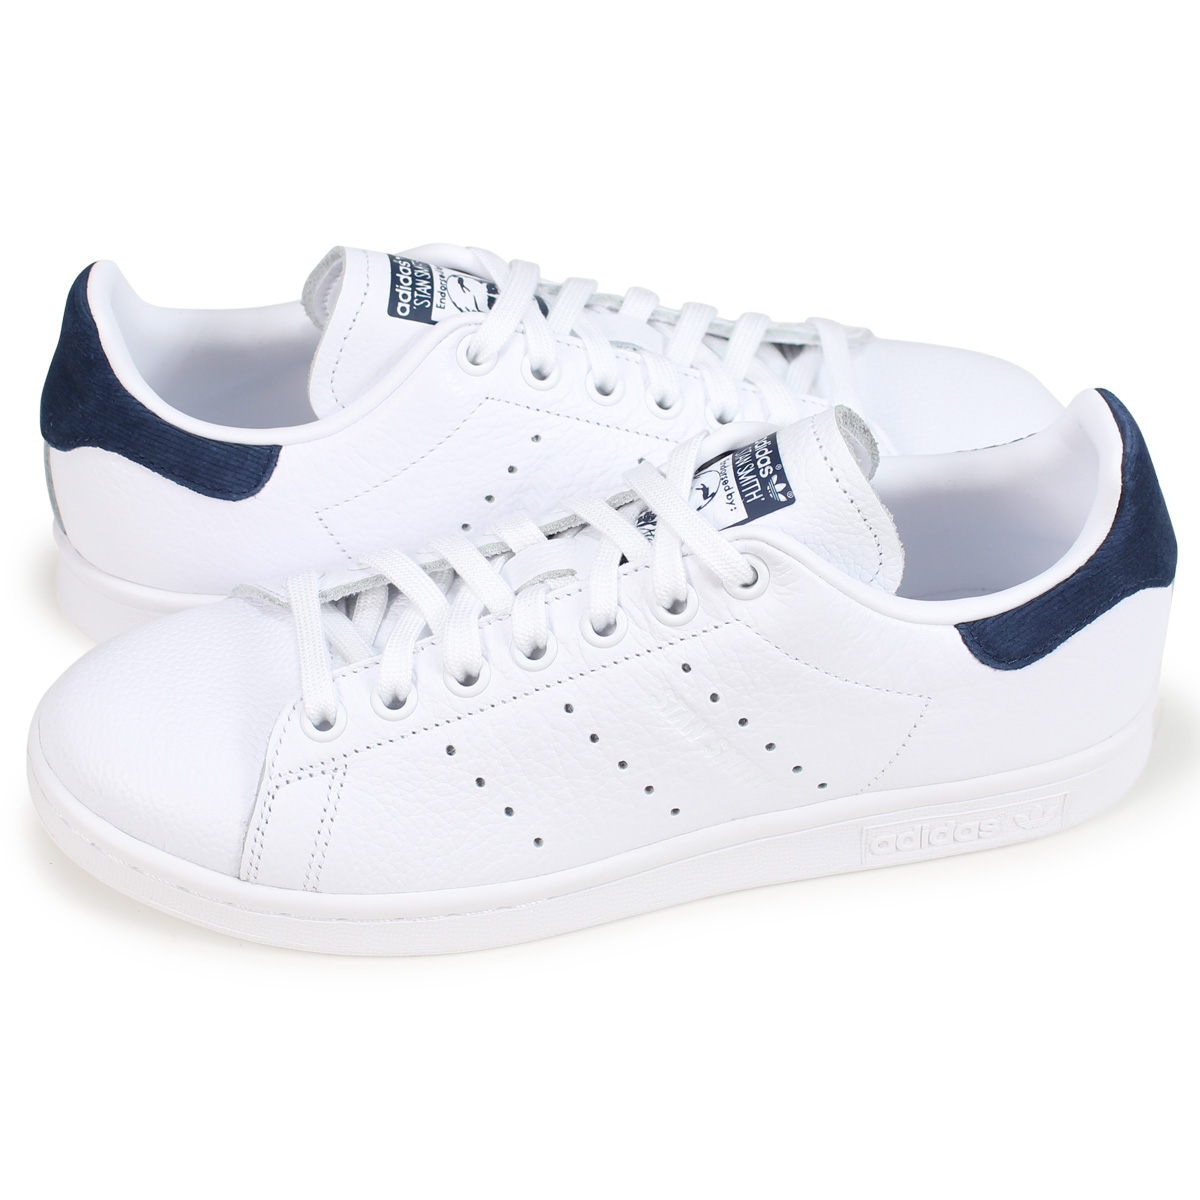 eb4c010625d adidas Originals STAN SMITH W Adidas originals Stan Smith Lady s sneakers  B41626 white  9 29 Shinnyu load